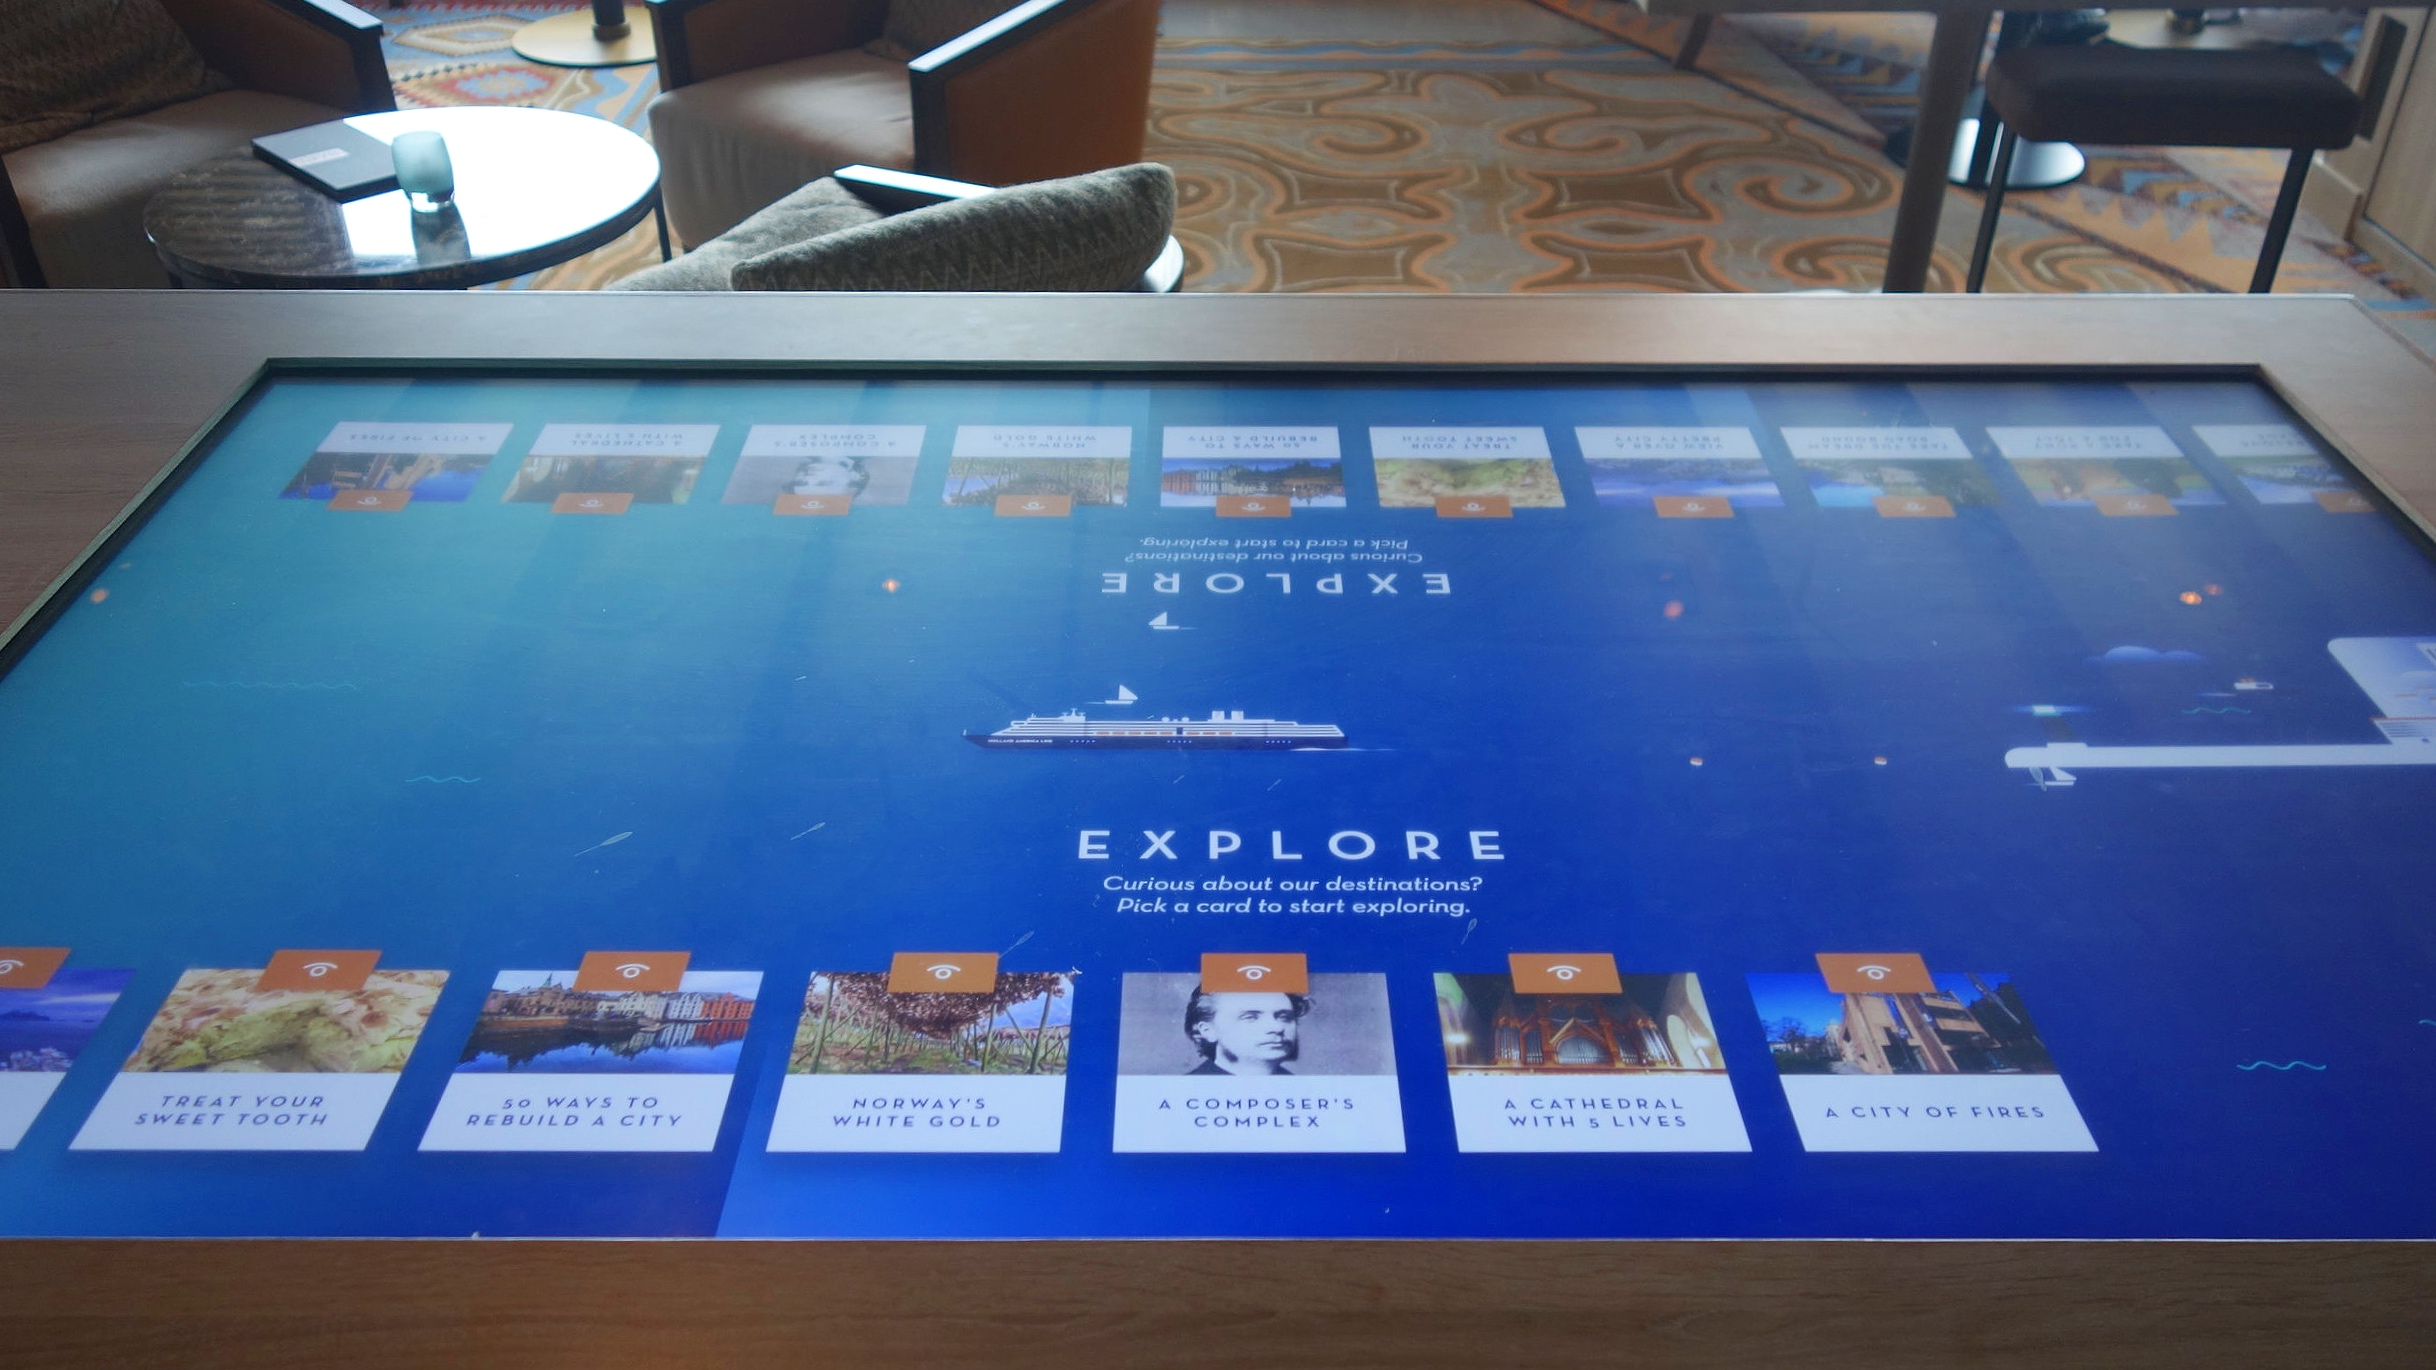 The interactive touch screens in the shore excursion area of the Explorers Lounge.